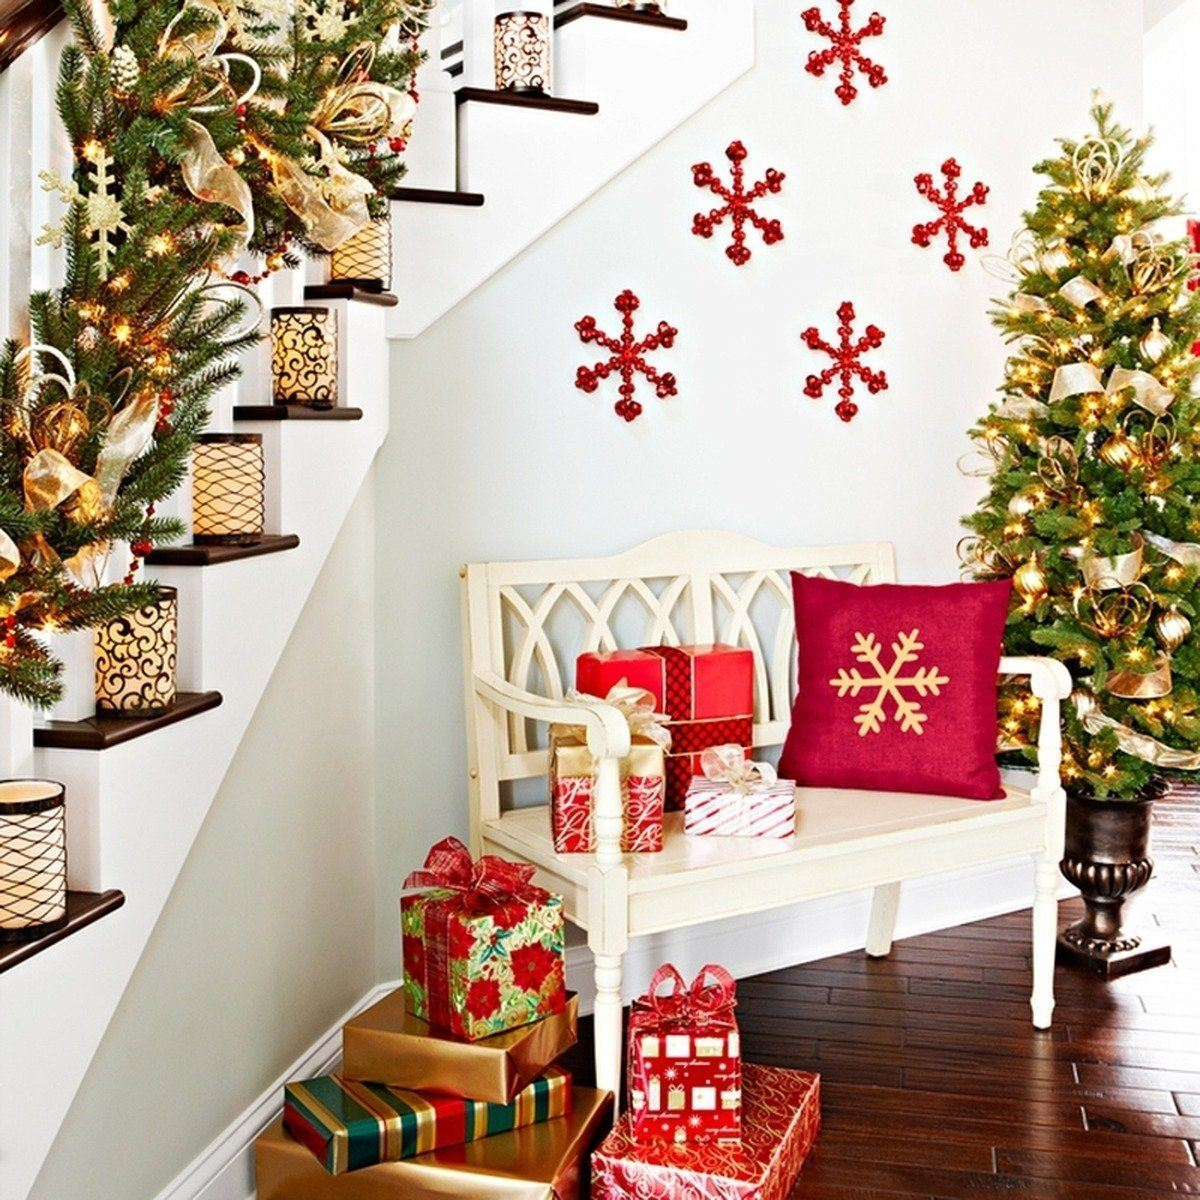 terrapapers-com-cristmas-decor-11